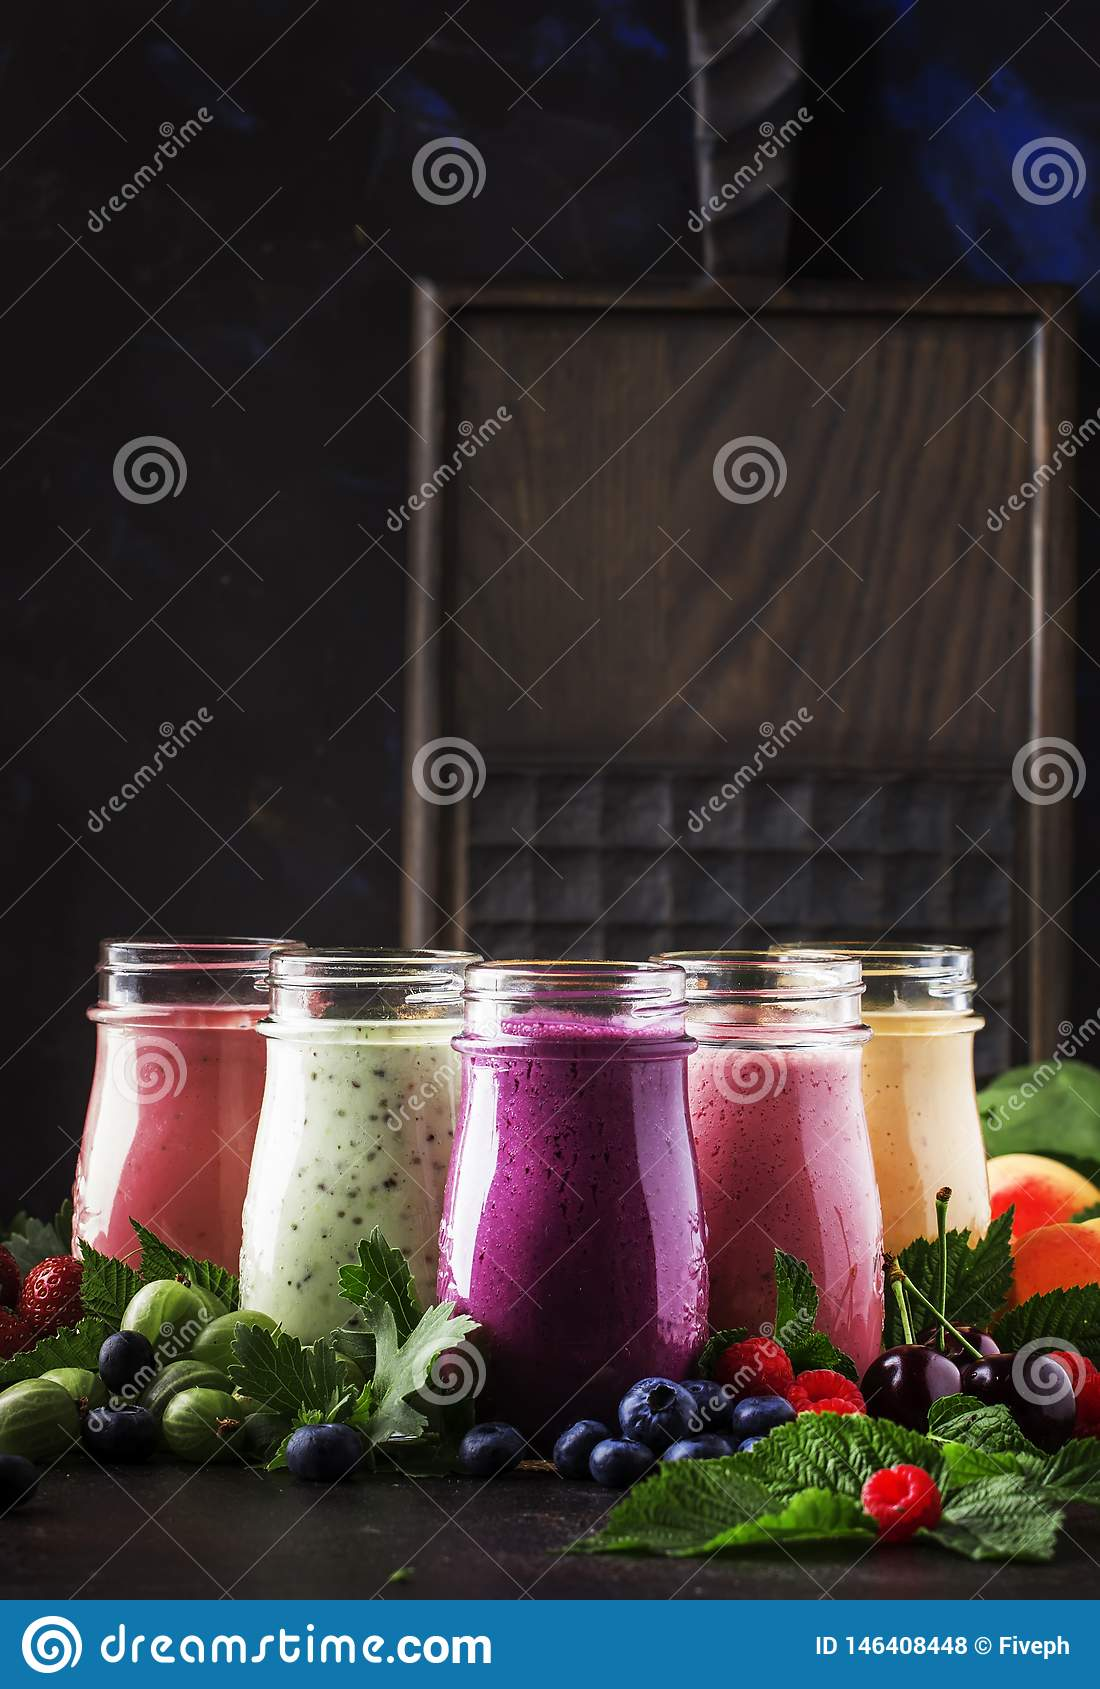 Berry fruit cokctalis, smoothies and milkshakes, fresh fruit and berries on brown table, still life, selective focus